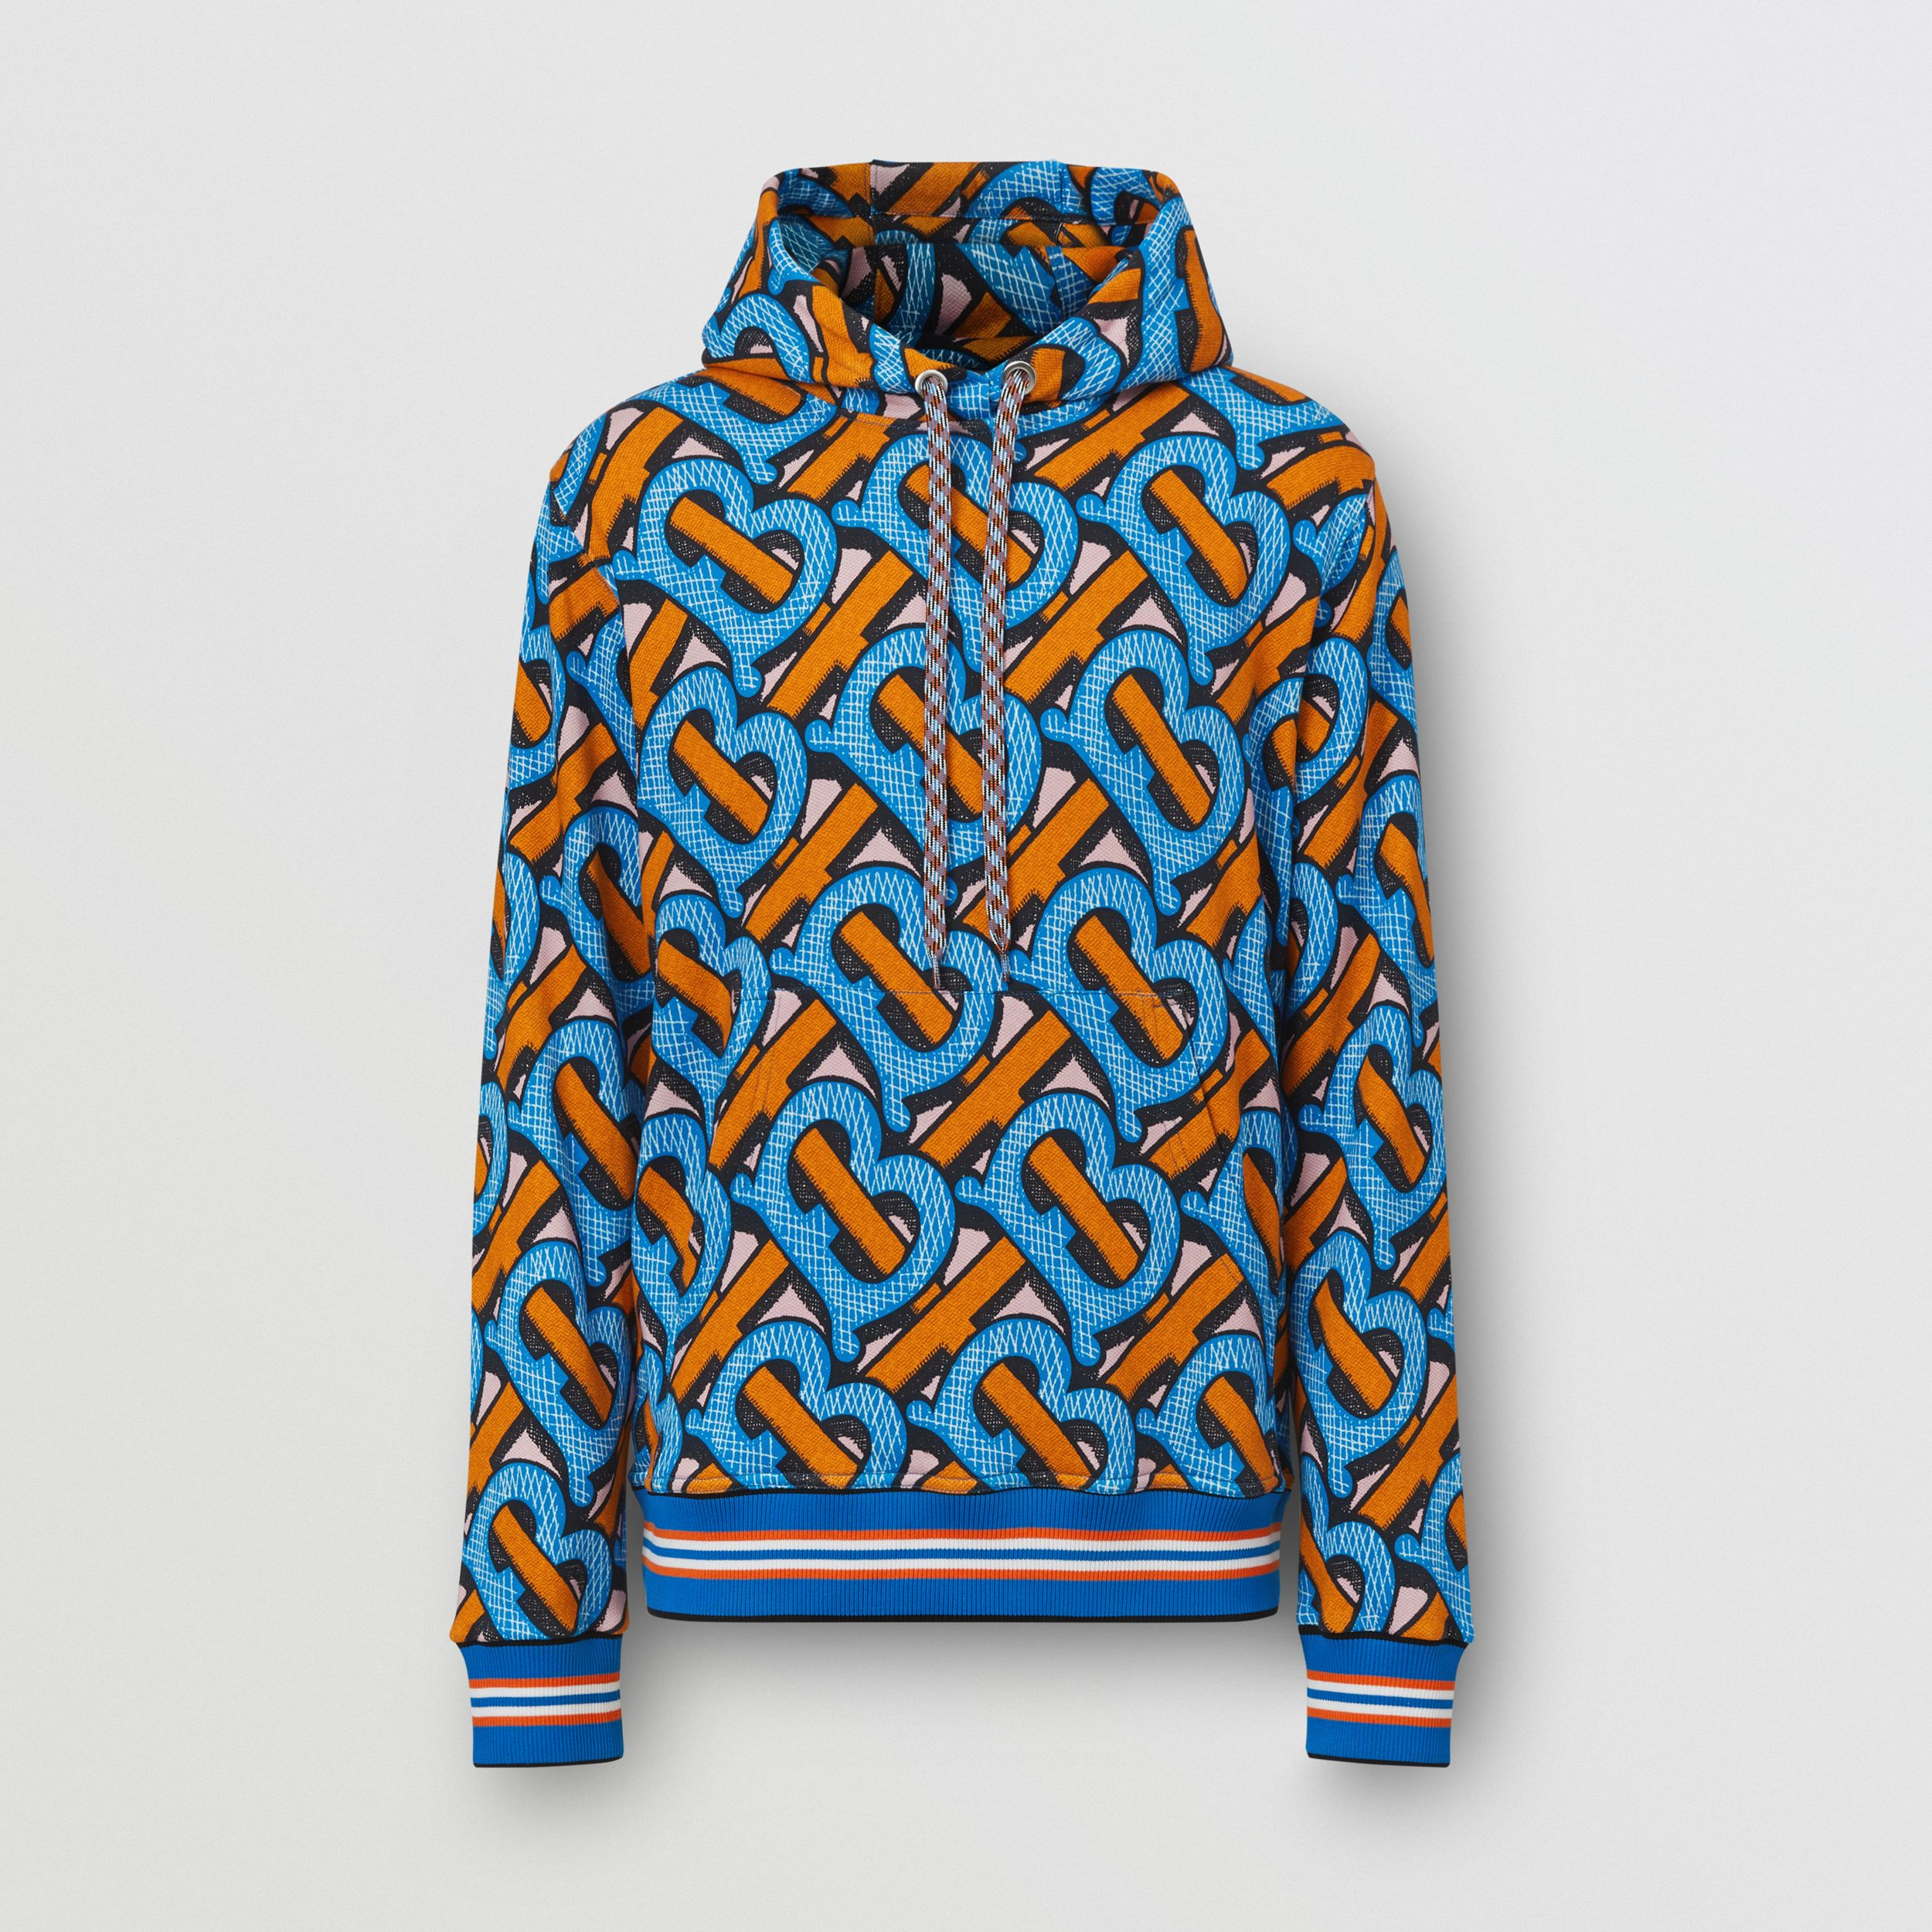 Monogram Print Cotton Hoodie – Unisex in Bright Cobalt | Burberry United Kingdom - 1